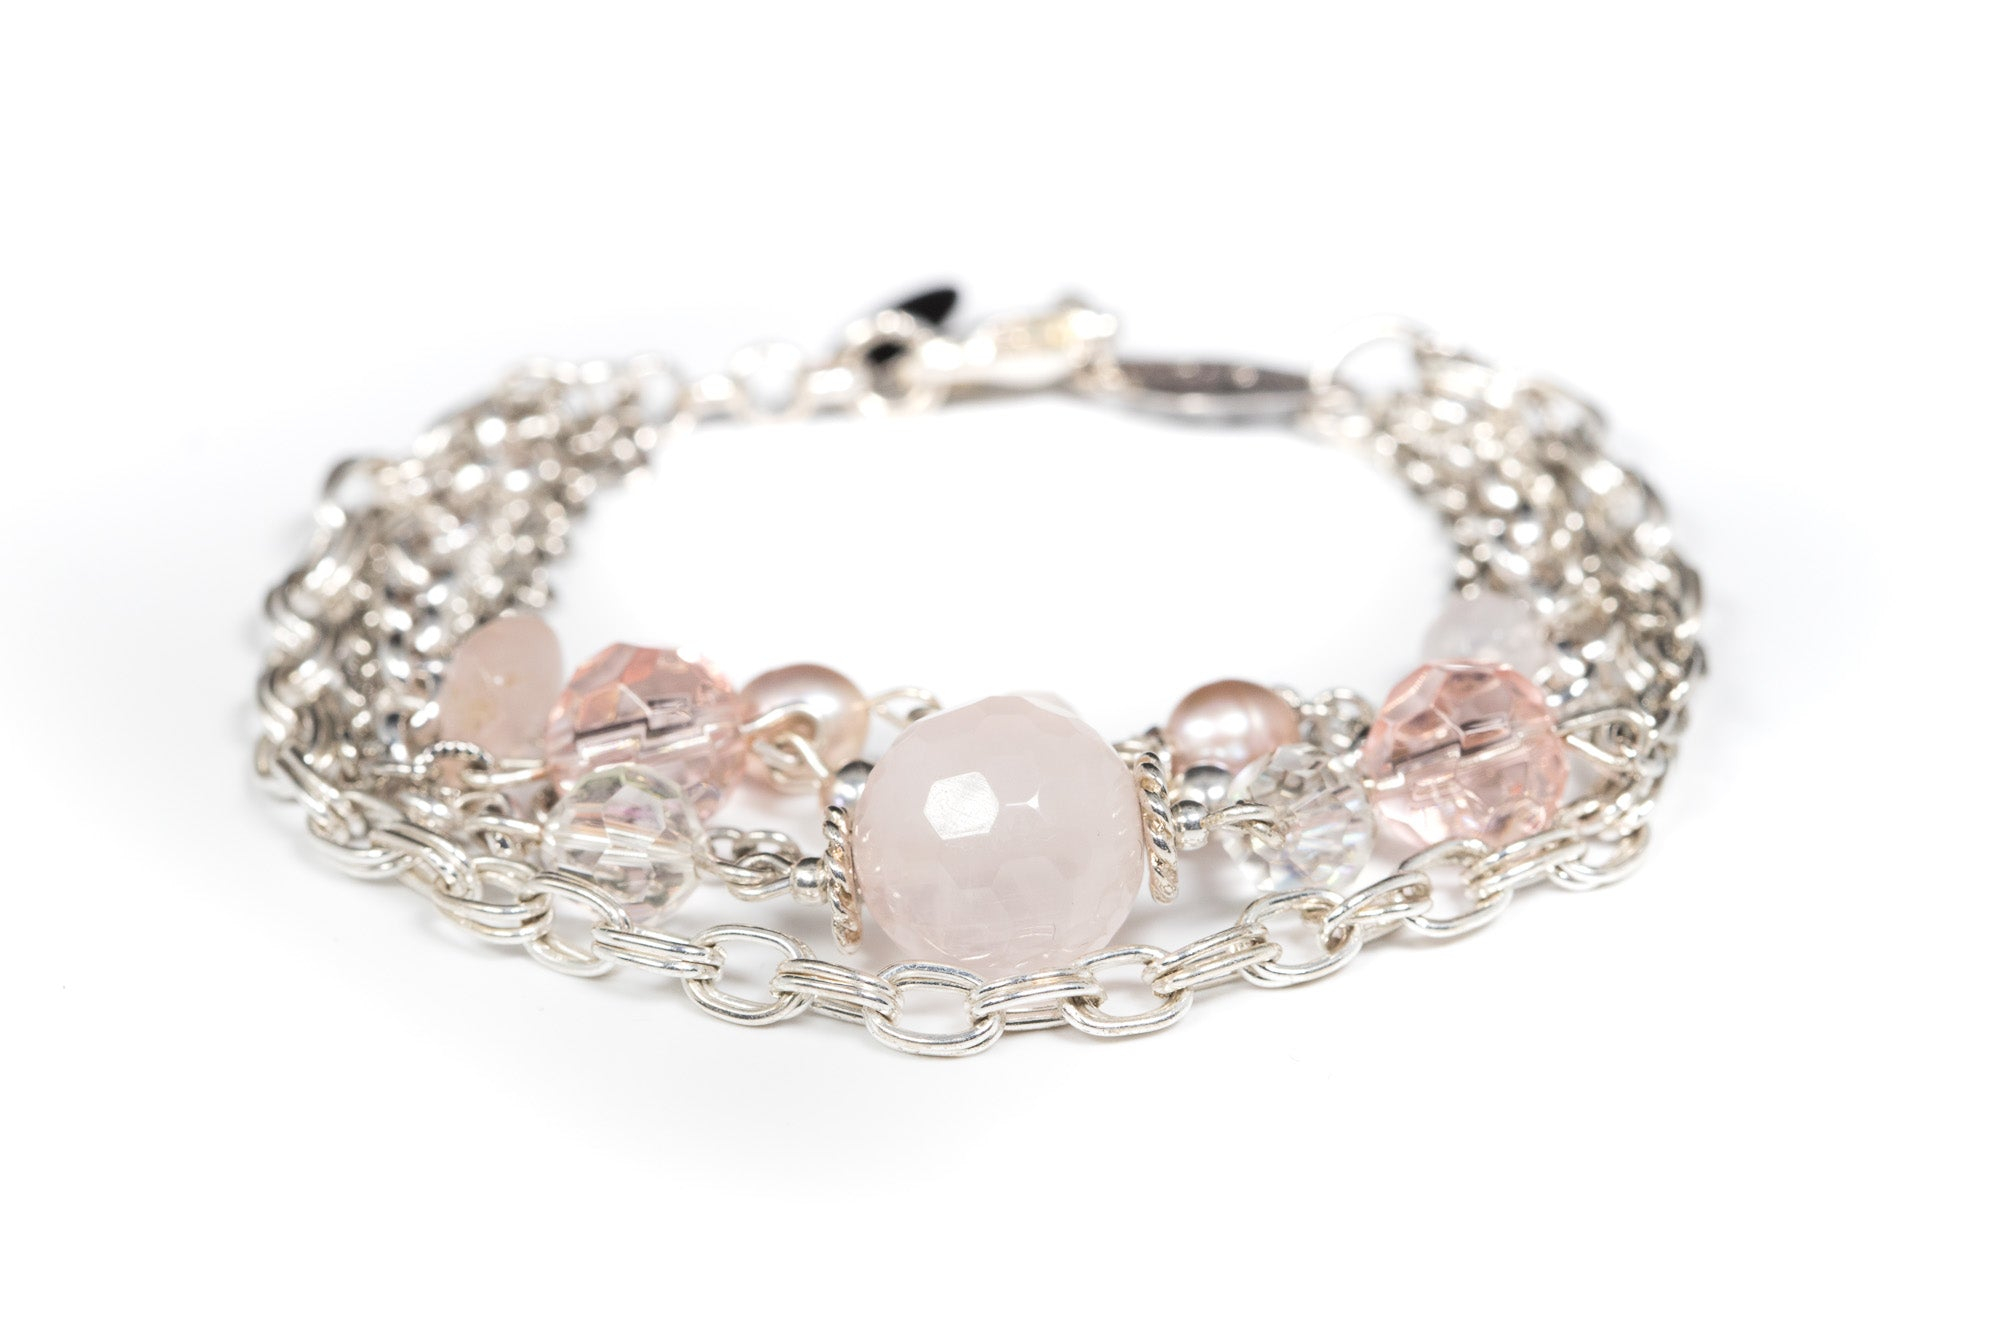 a Carolily Finery bracelet made from rose quartz and sterling silver